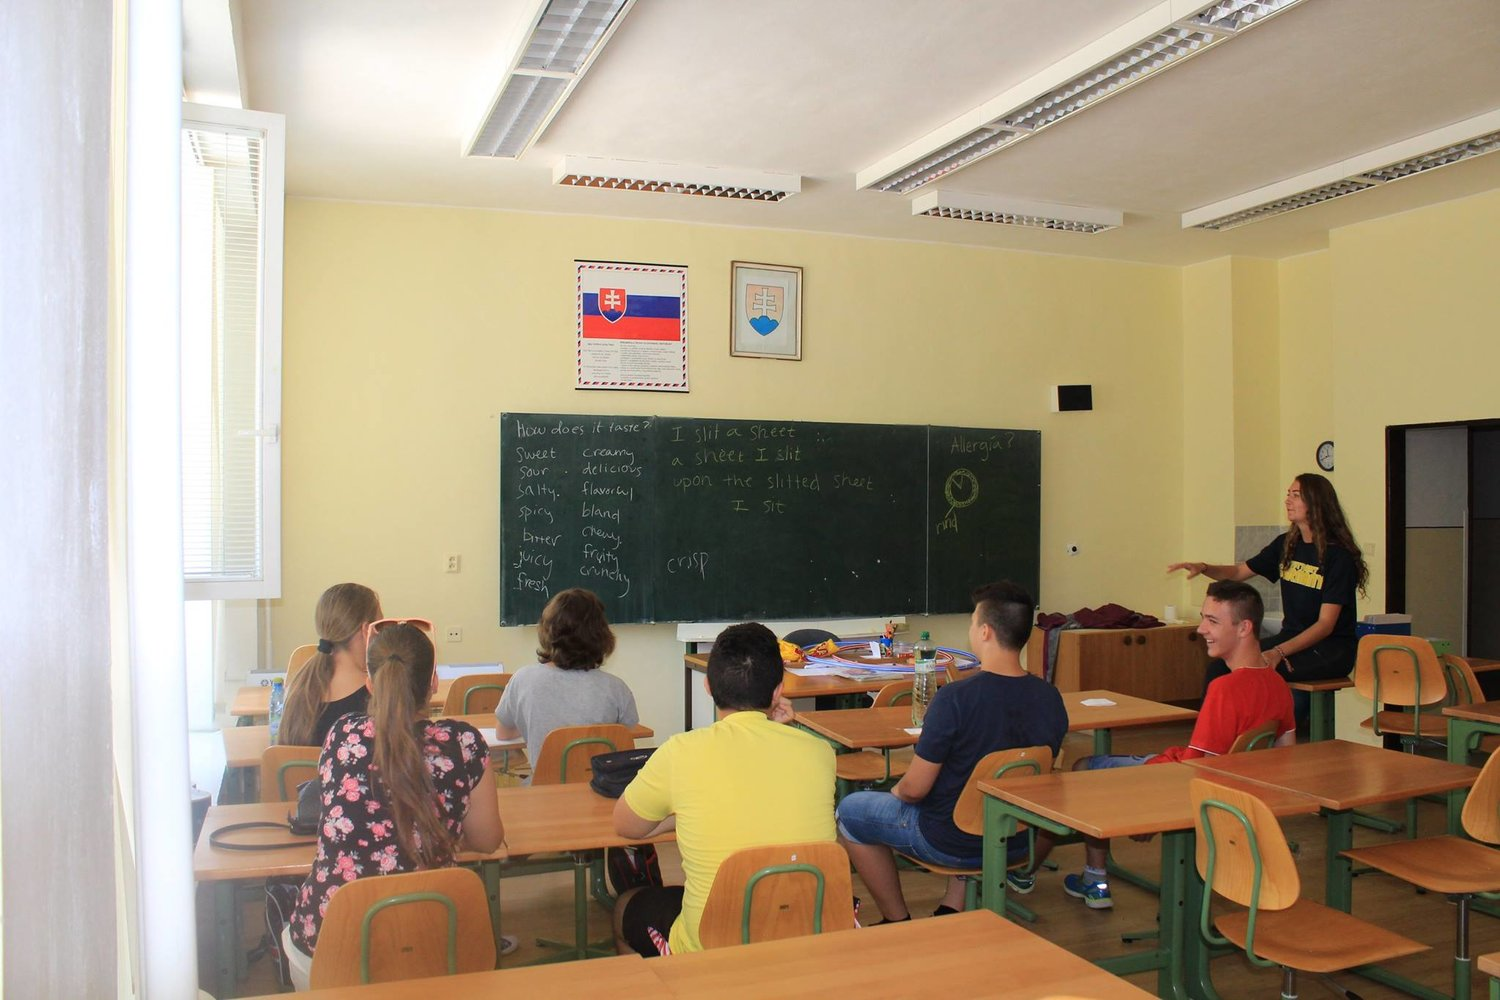 Volunteer teaching in a nice classroom